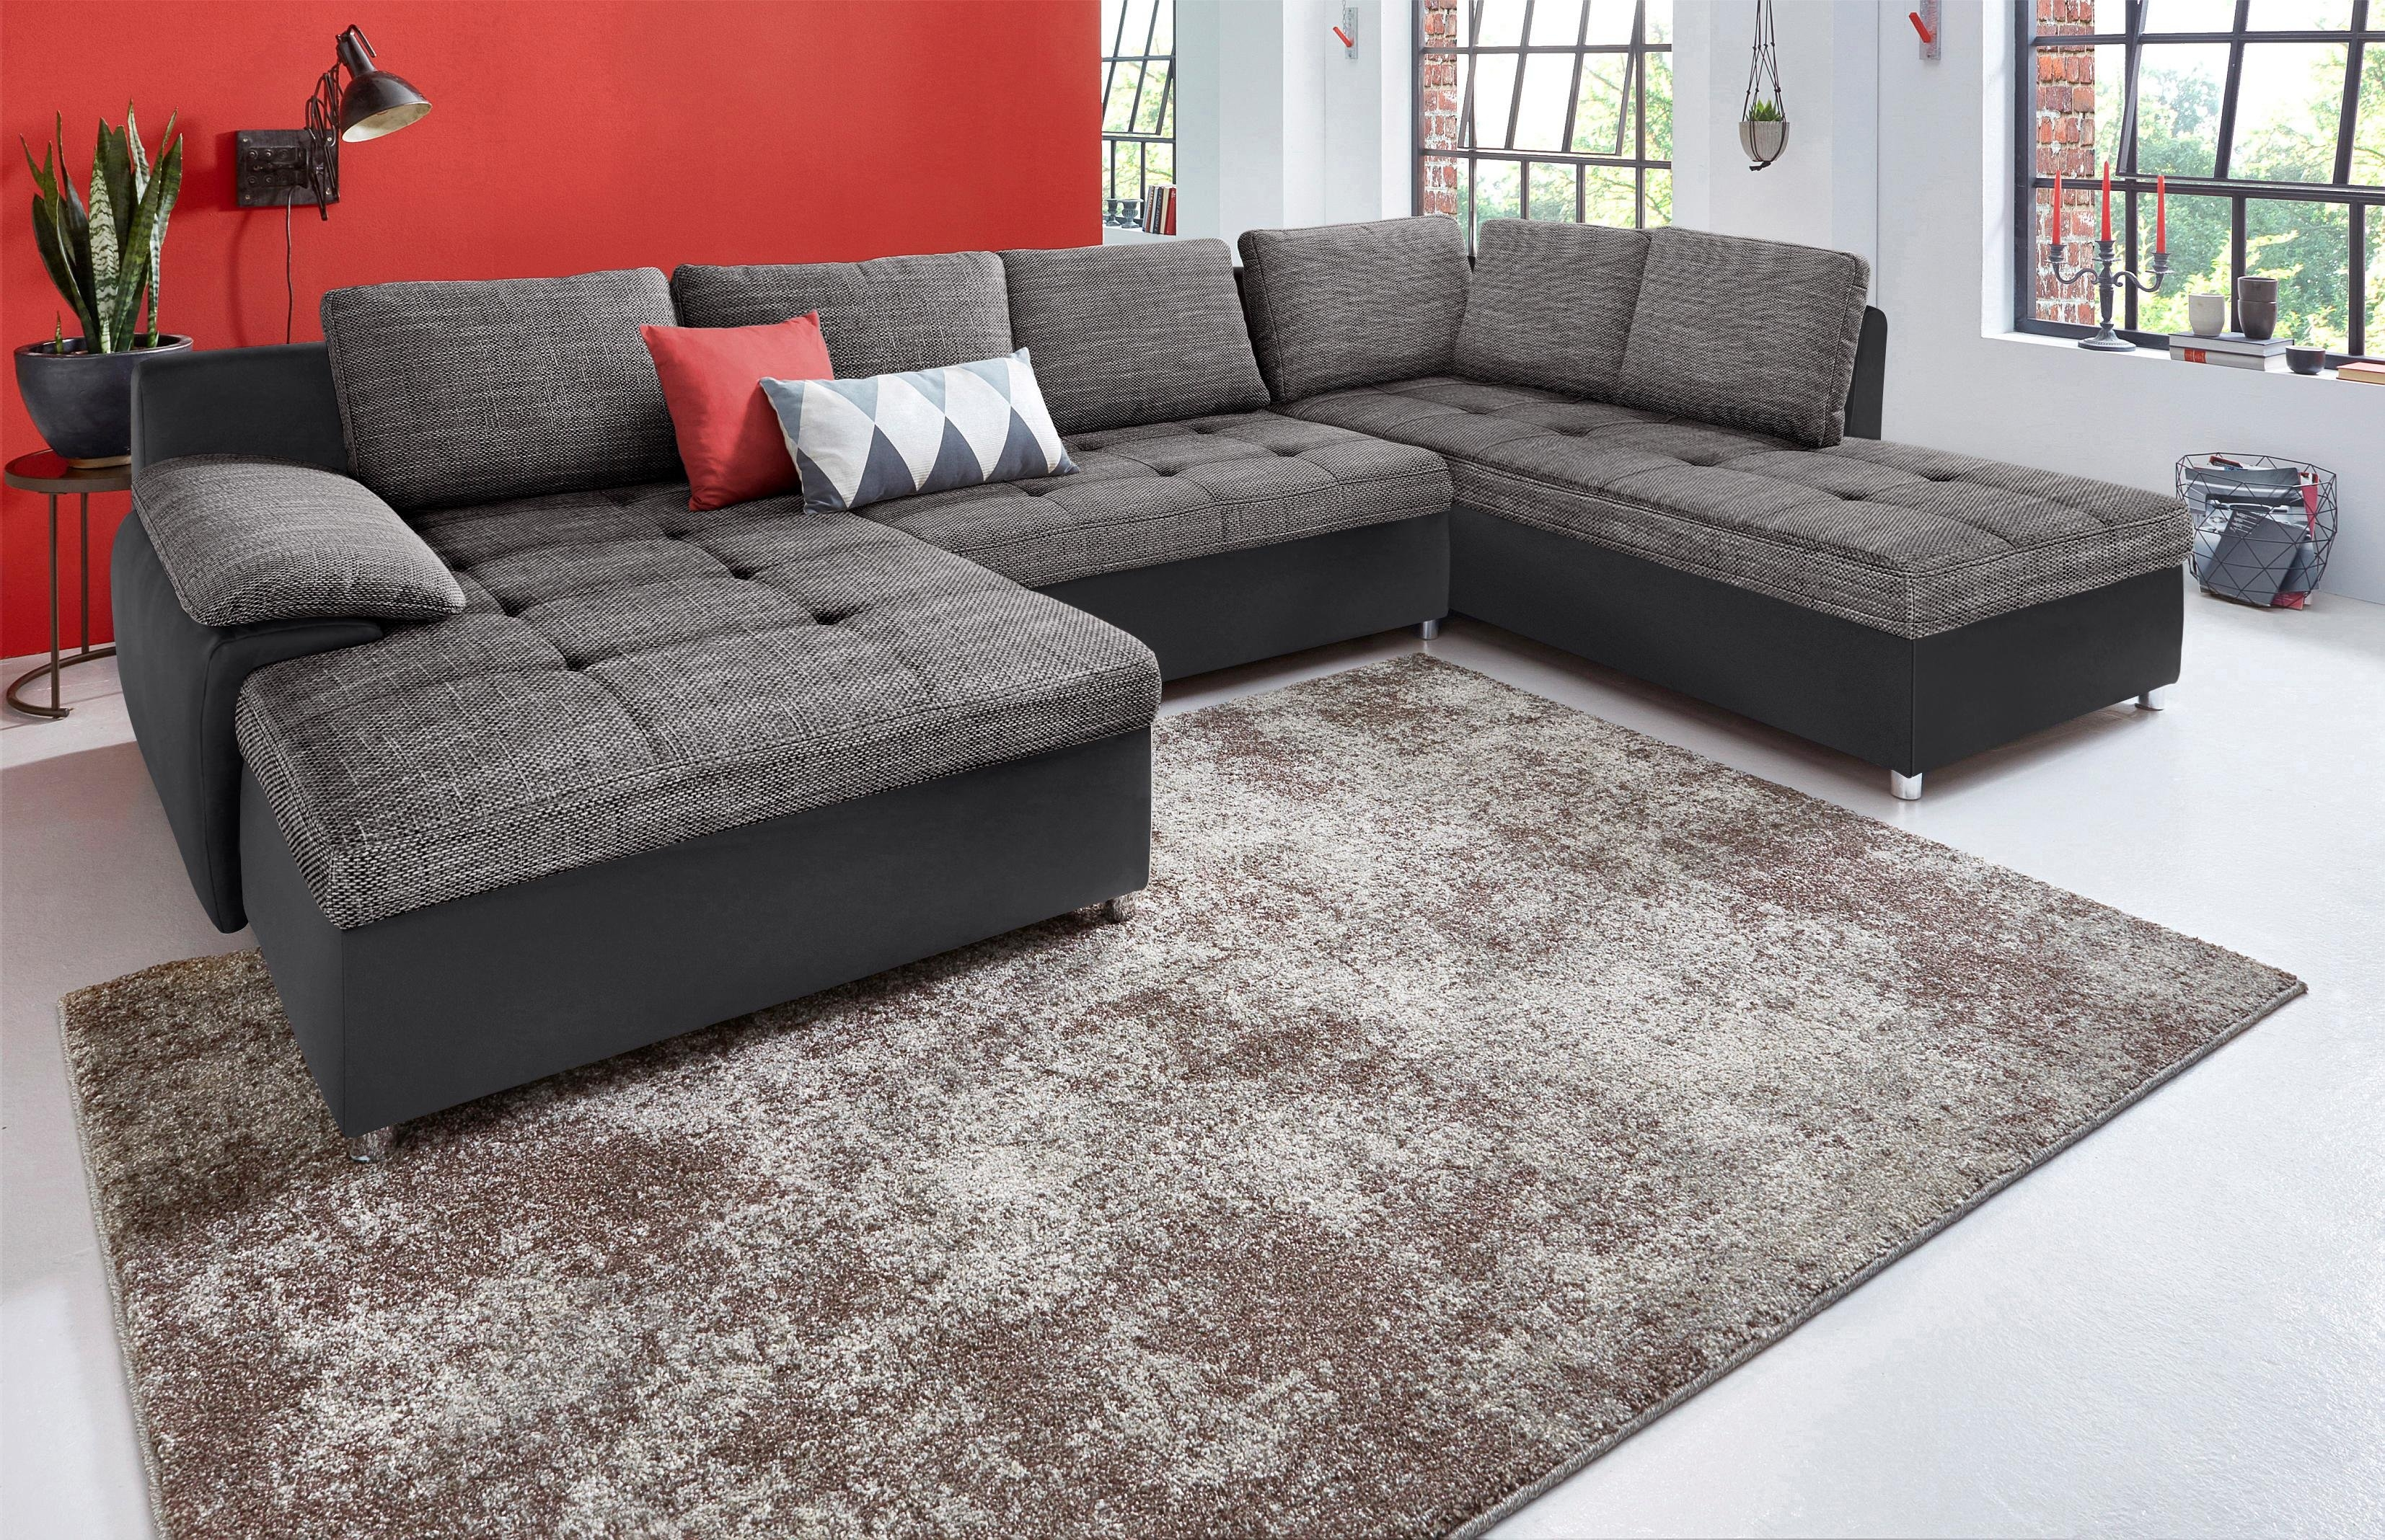 otto xxl sofa awesome domo collection wahlweise mit with otto xxl sofa cheap otto sofa cassina. Black Bedroom Furniture Sets. Home Design Ideas